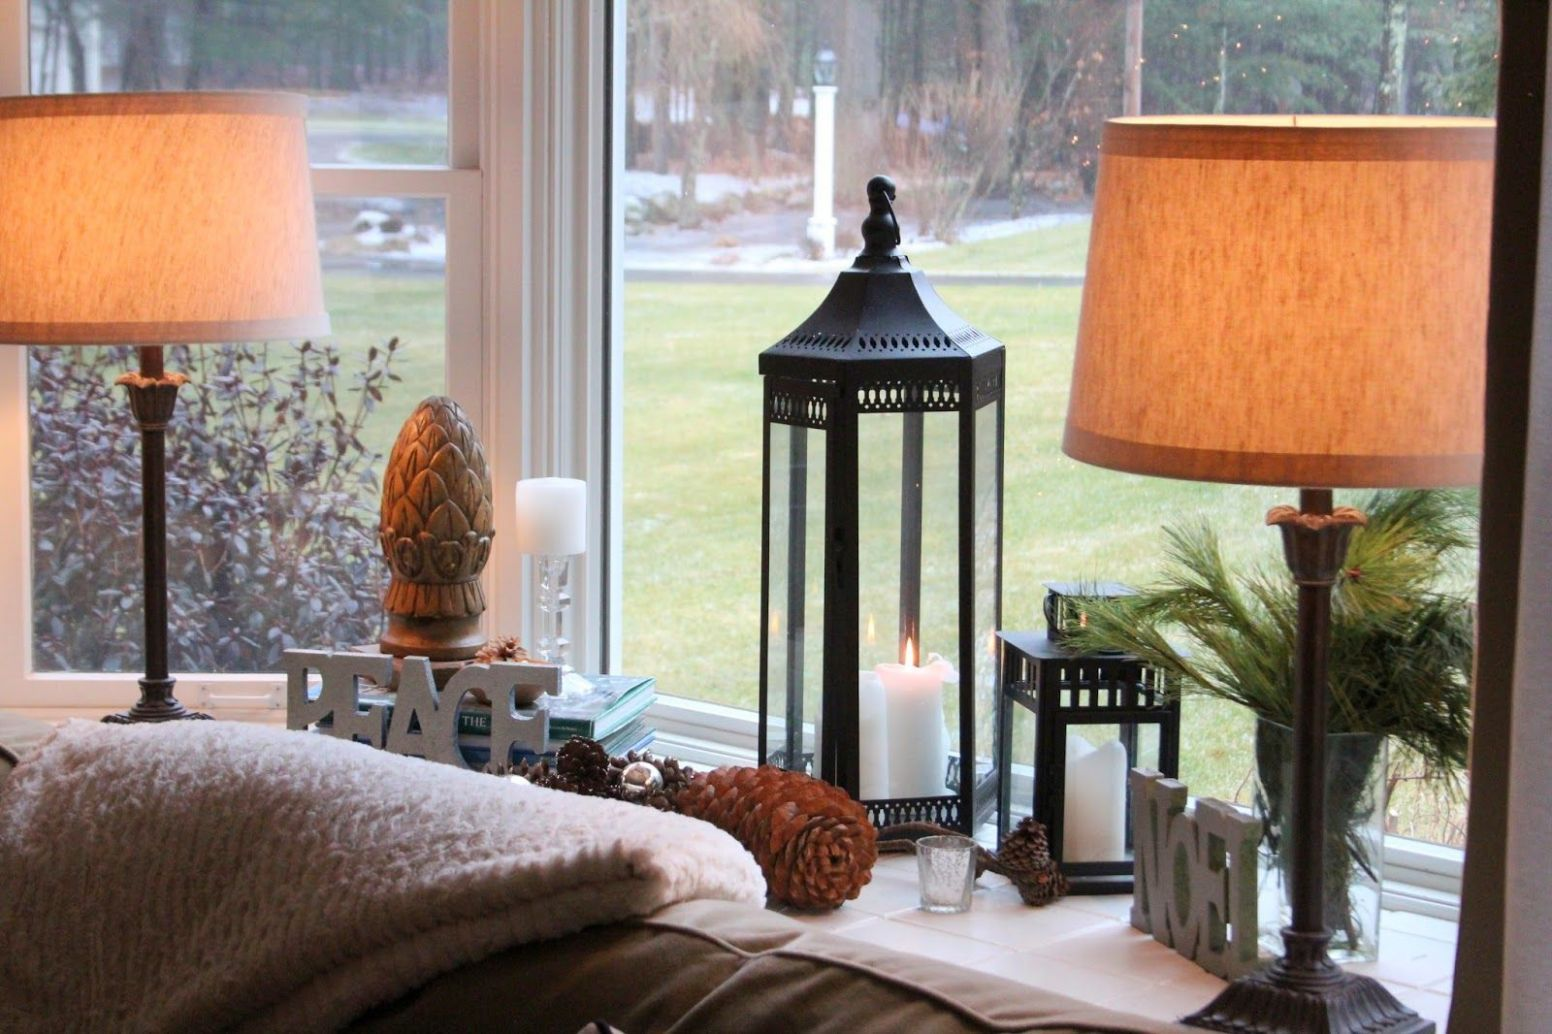 Styling Bay Window Sills | Bay window living room, Window sill ...